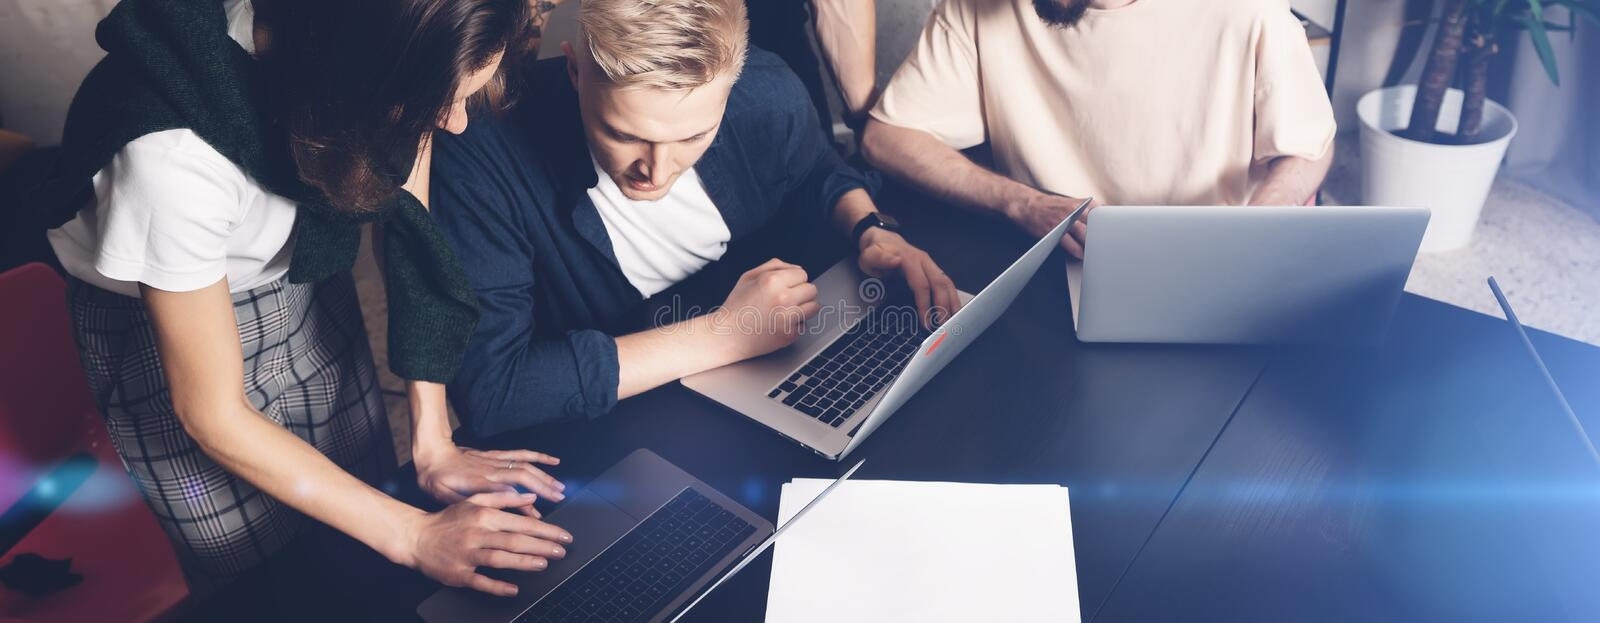 Coworkers team at work. Group of young business people in trendy casual wear working together in creative office.Wide. Coworkers team at work. Group of young royalty free stock photo